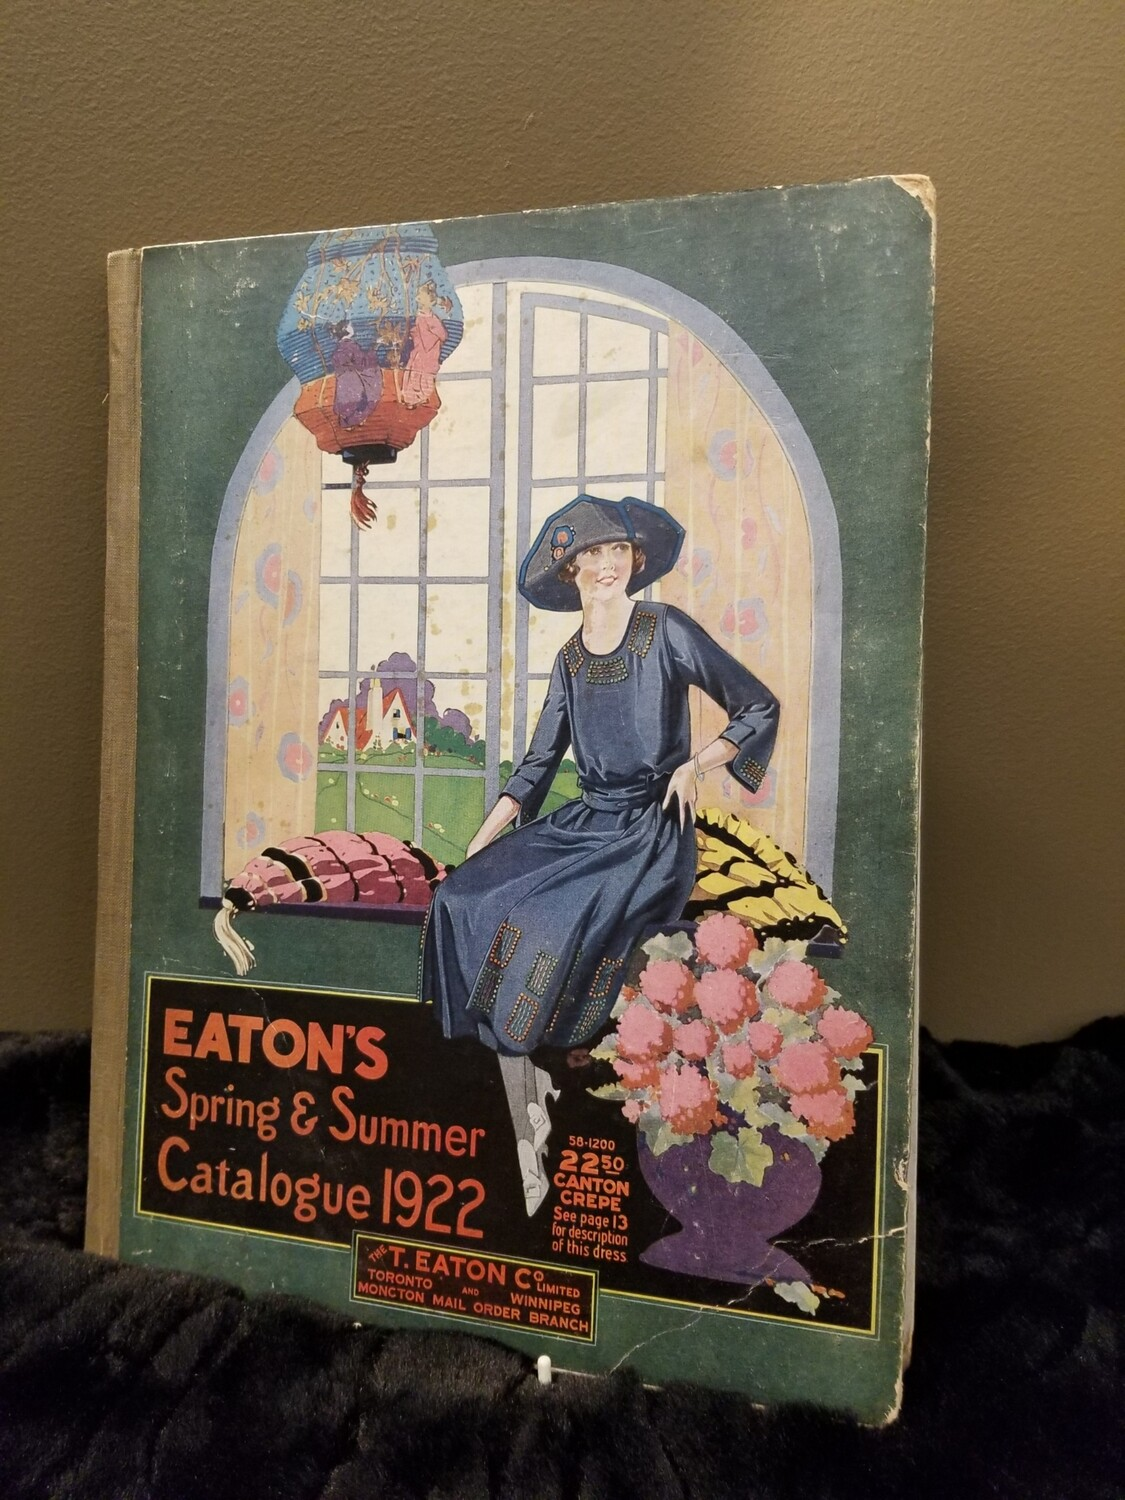 Eatons Catalogue -Spring and Summer 1922